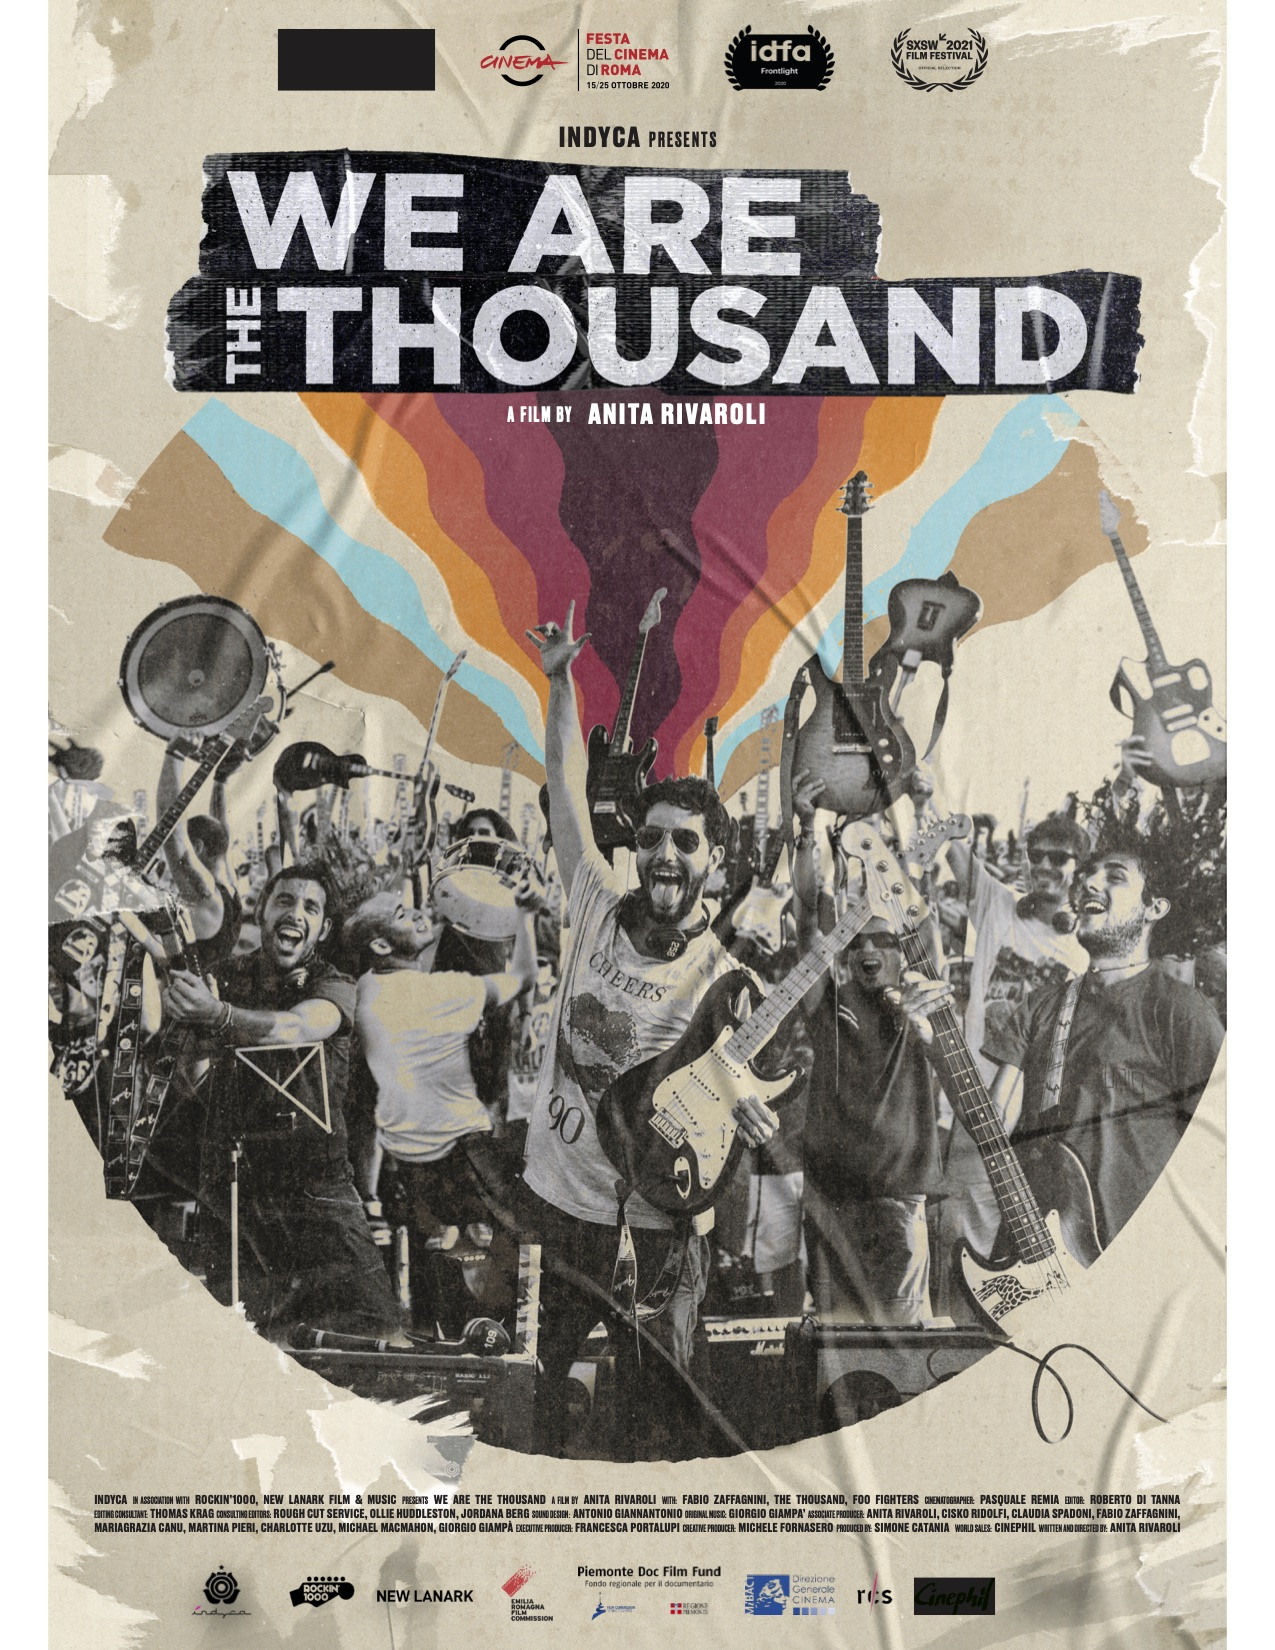 We are the Thousand directed by Anita Rivaroli